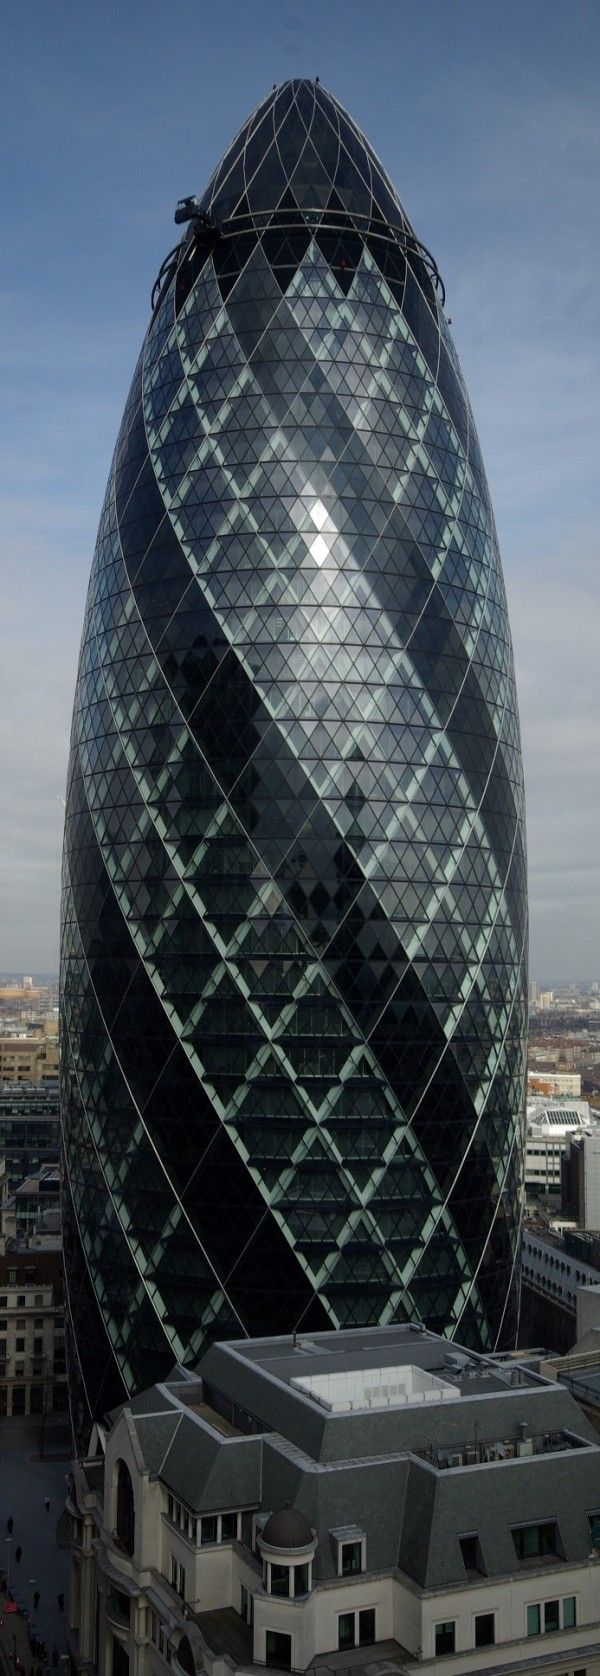 30 St Mary Axe, The Gherkin, City of London